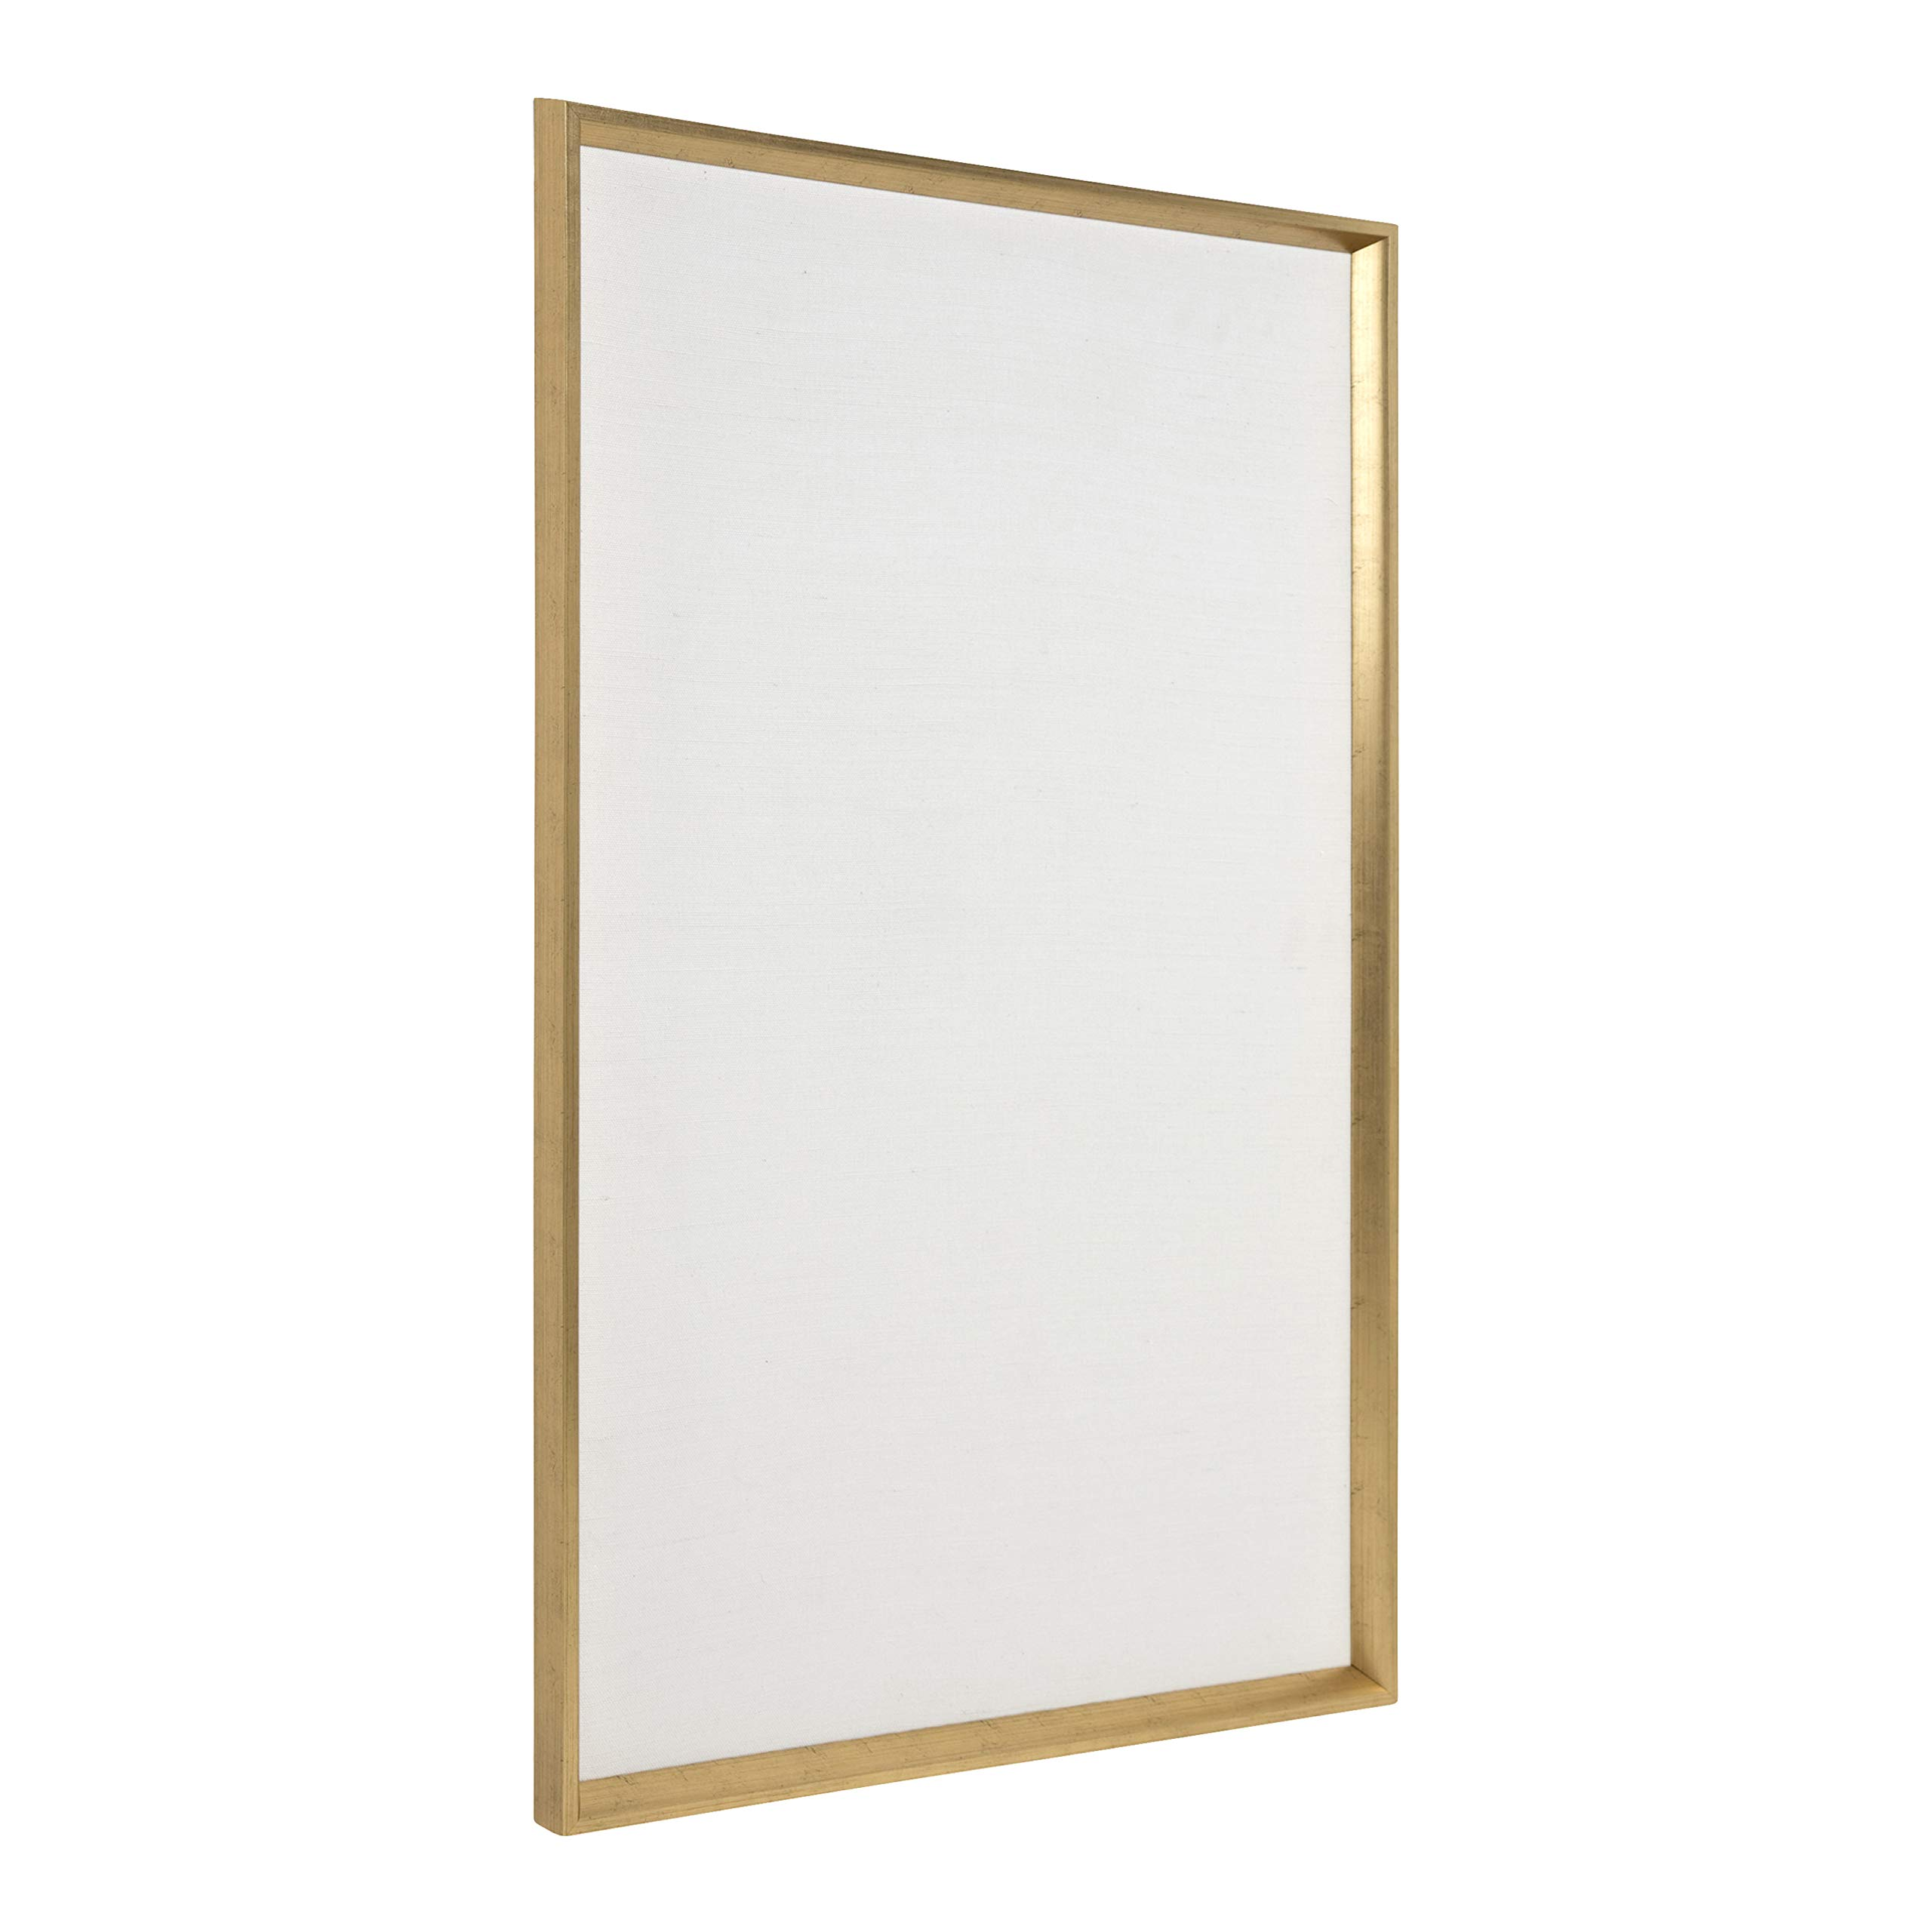 DesignOvation Kate and Laurel Calter Framed Linen Fabric Pinboard, 25.5 x 41.5, Gold by DesignOvation